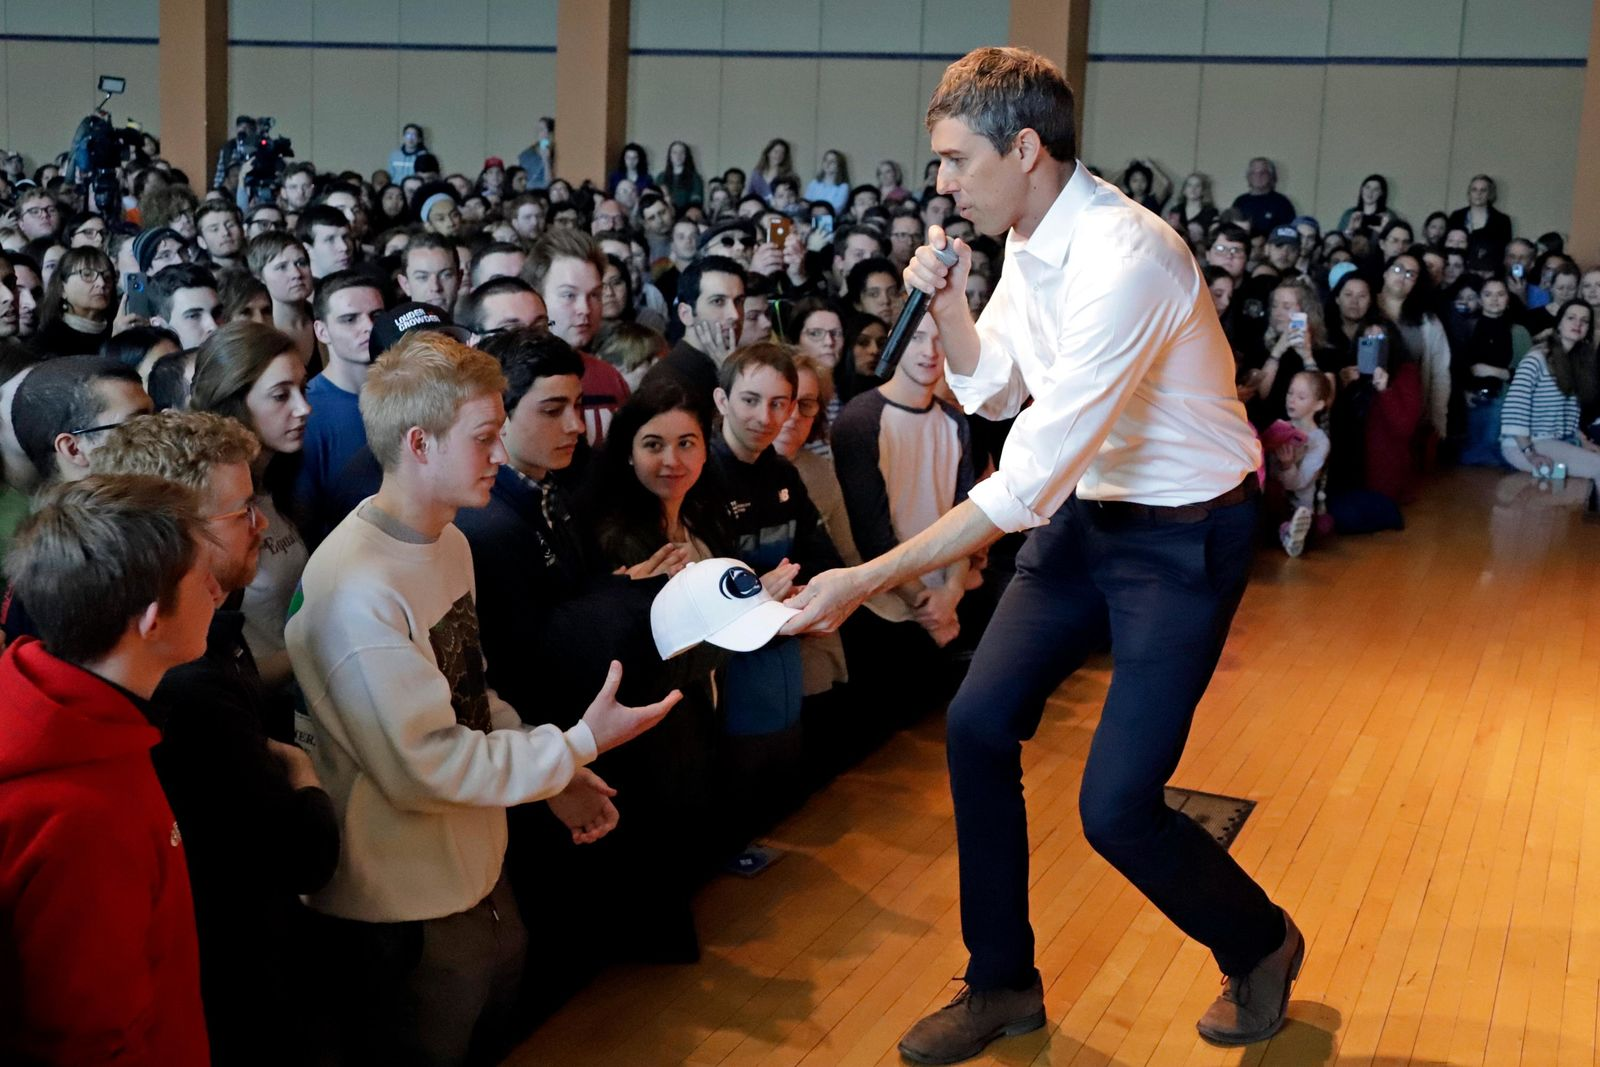 Democratic presidential candidate Beto O'Rourke, right, hands his cap to Tom Sowers, a freshman at Penn State from State College, Pa., as he speaks at an event at The Hub Robison Center on the Penn State campus in State College, Pa., Tuesday, March 19, 2019. (AP Photo/Gene J. Puskar)